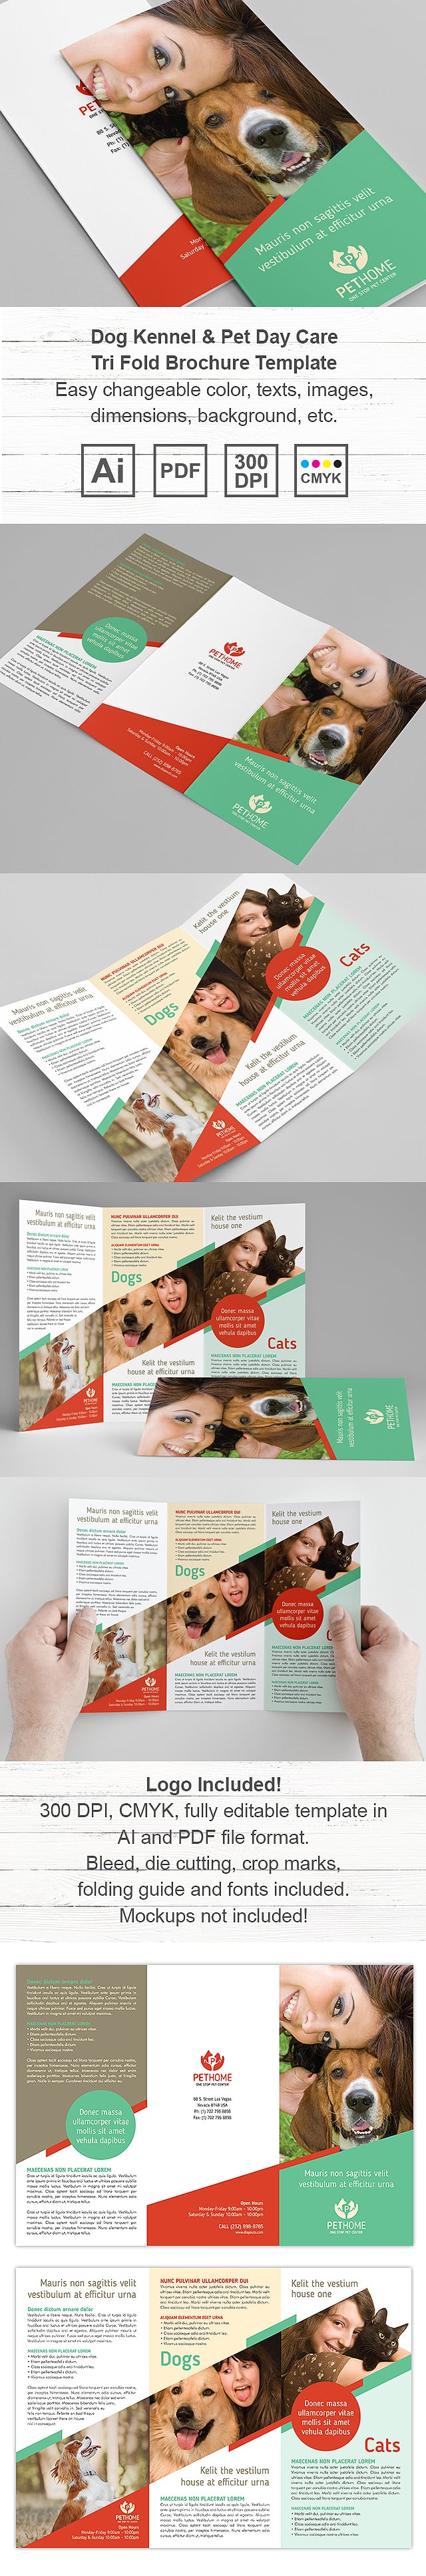 Dog Kennel & Pet Day Care Tri Fold Brochure Template